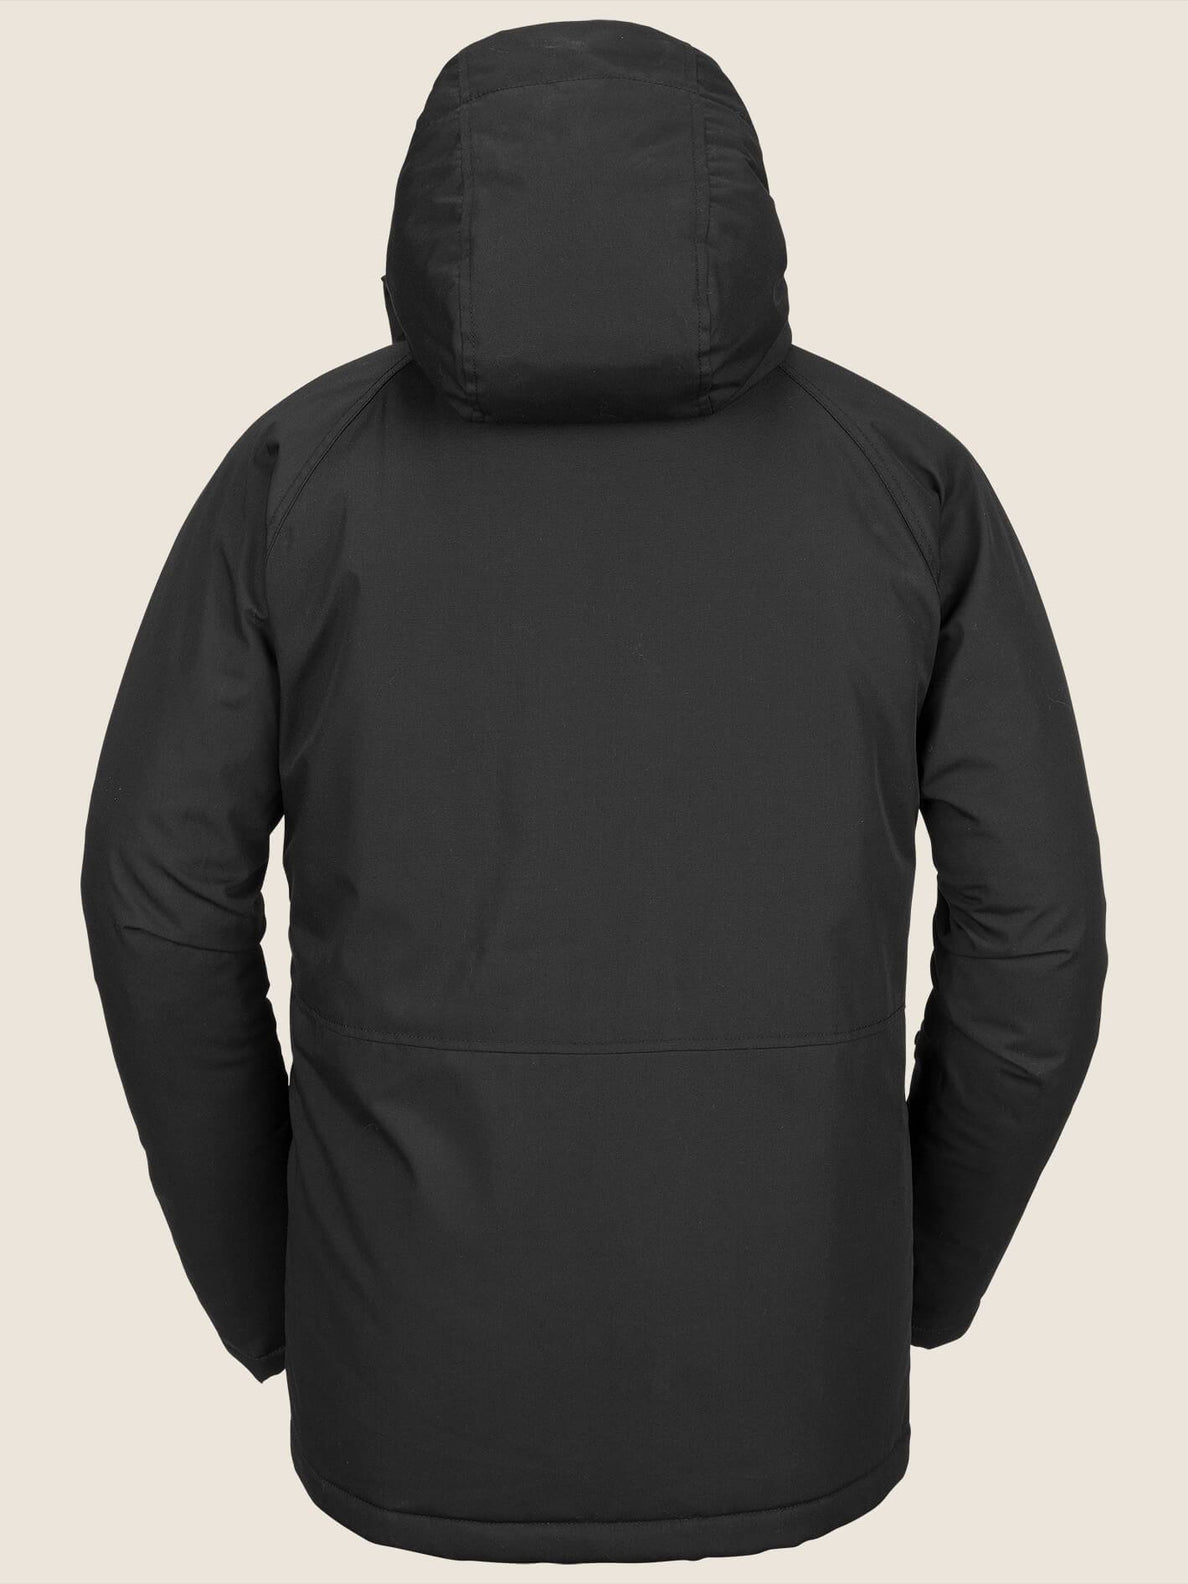 Renton Winter Parka In Black, Back View